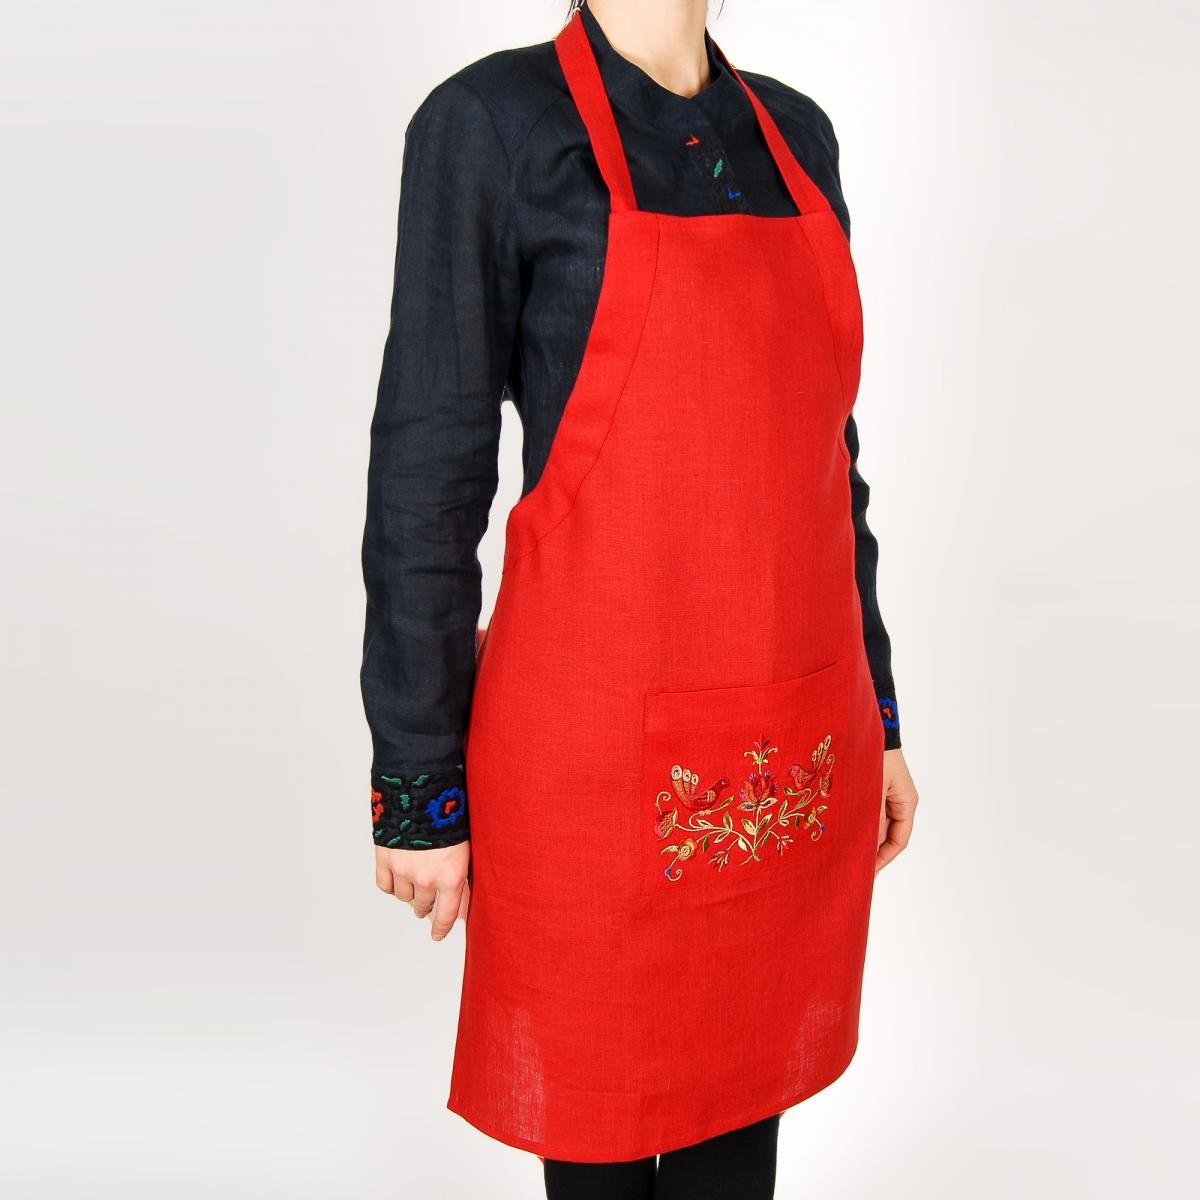 Apron for your kitchen with embroidery